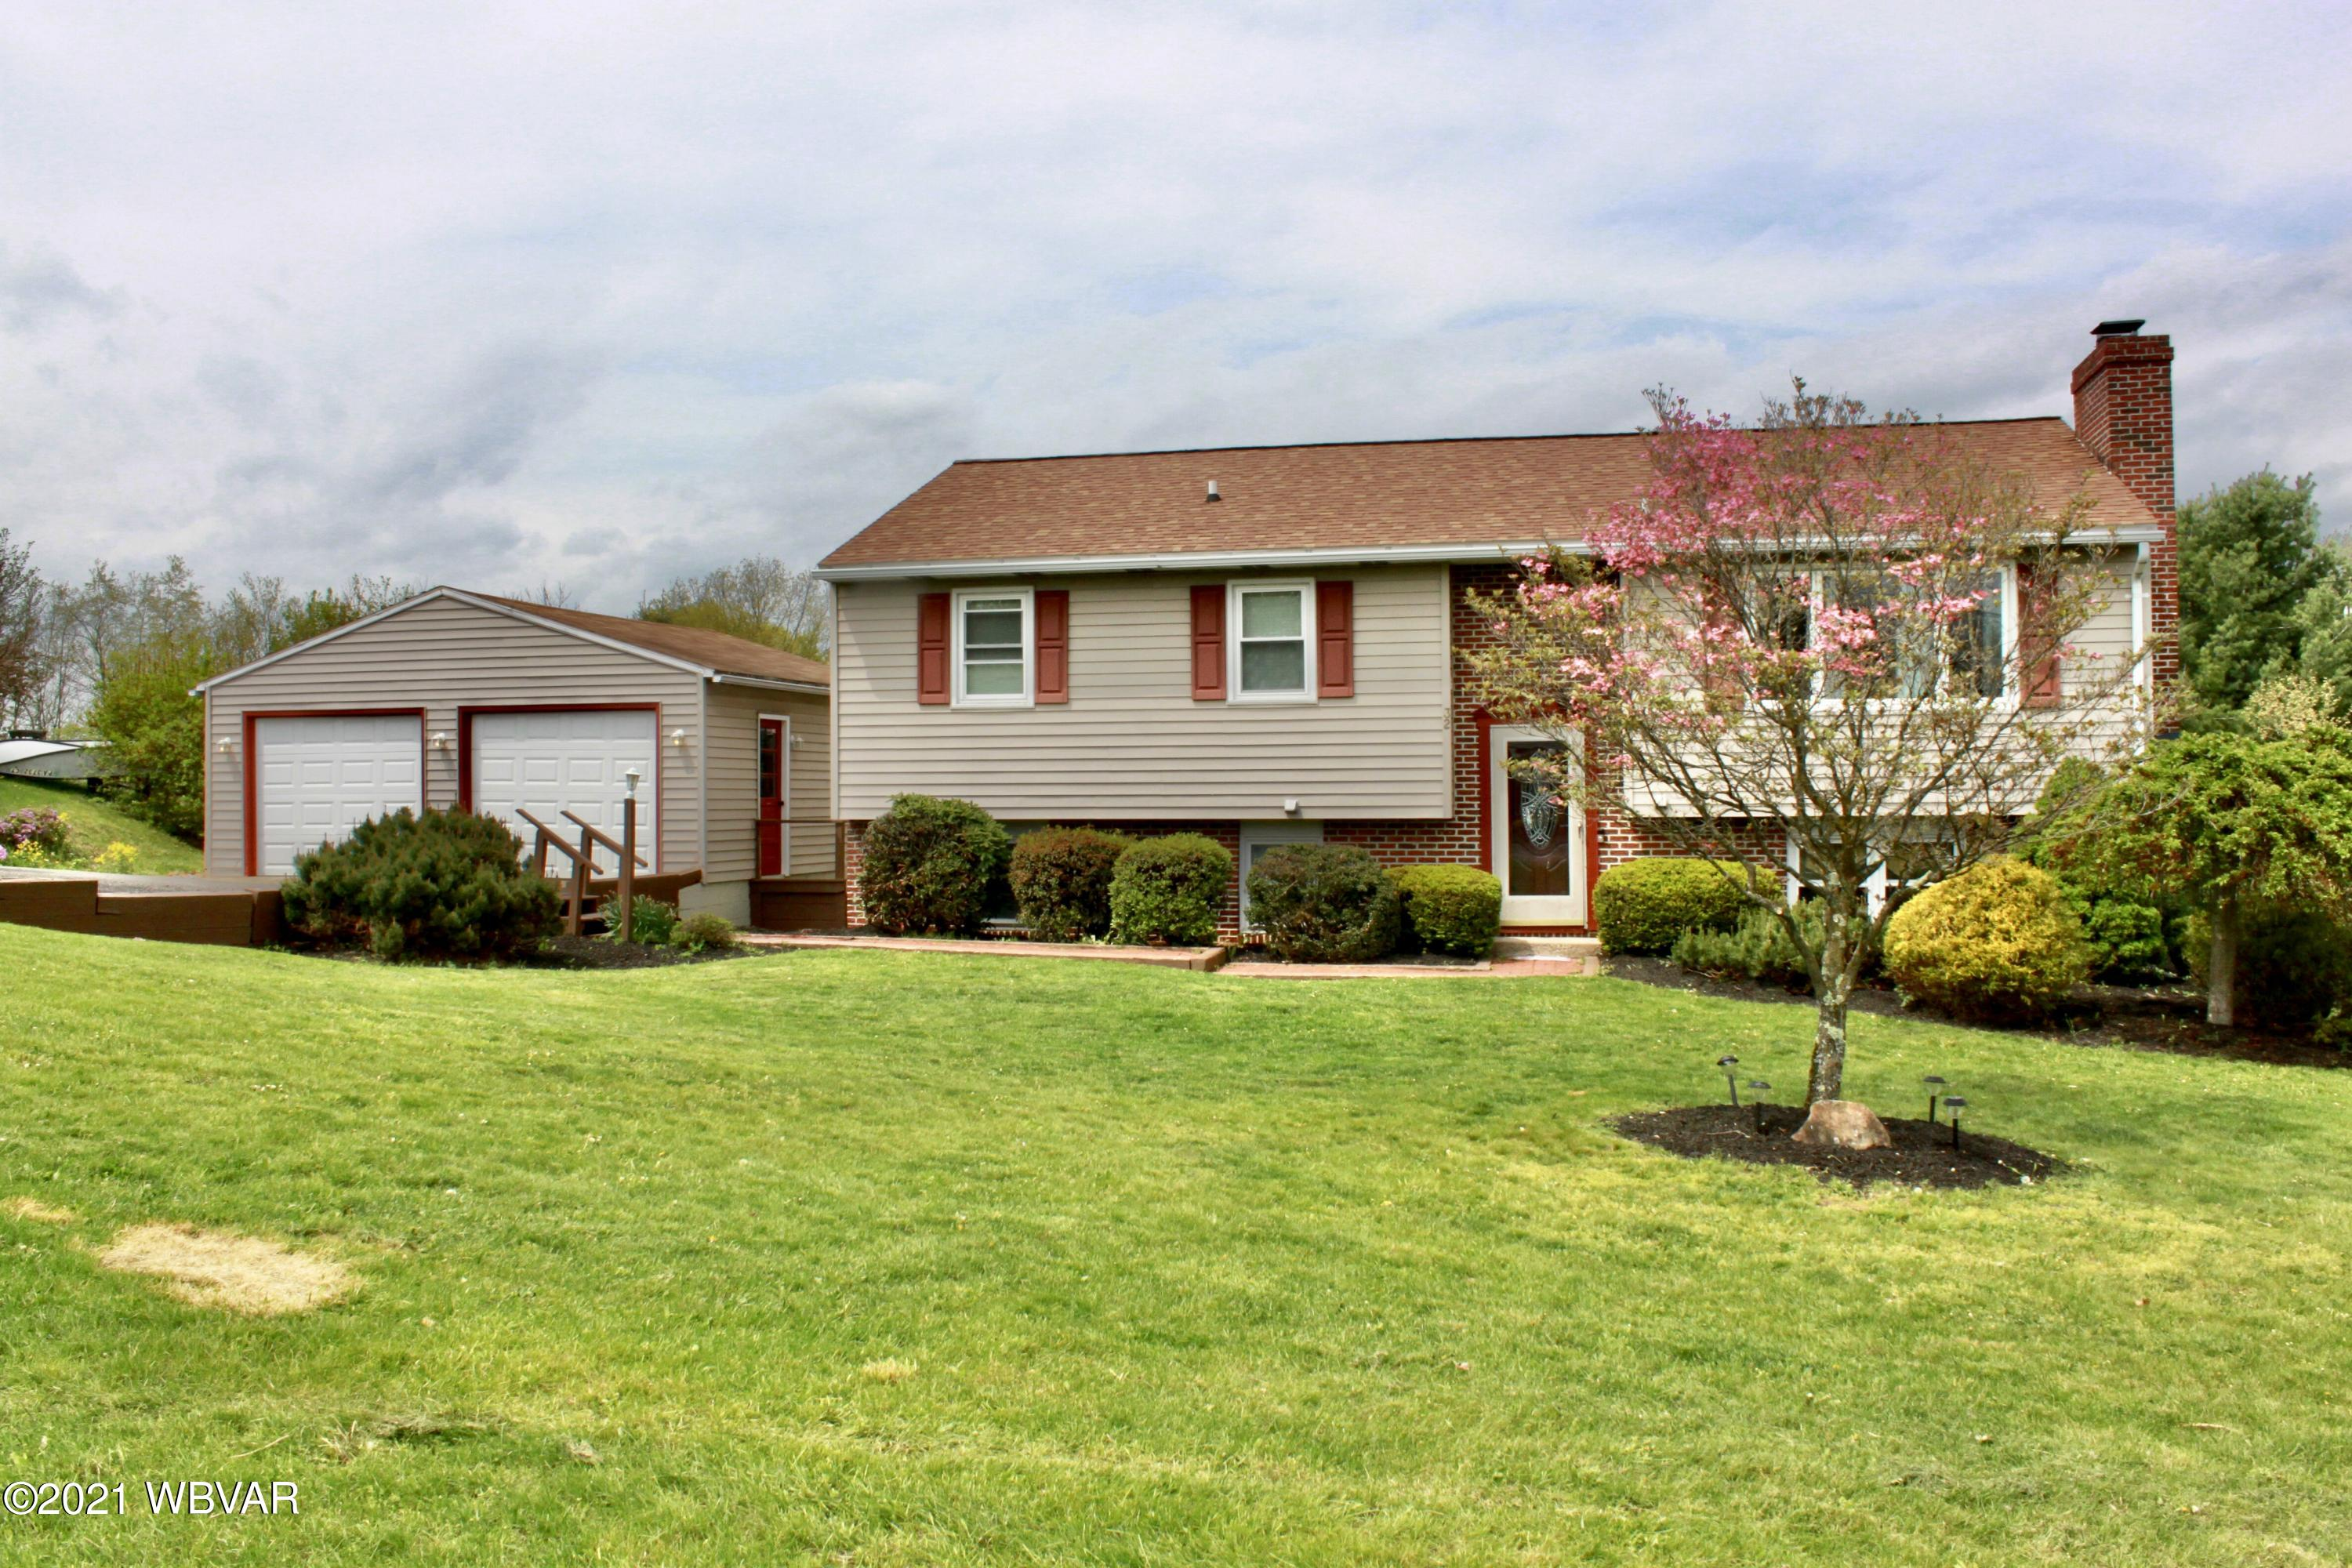 32 HILLCREST LANE, Williamsport, PA 17701, 3 Bedrooms Bedrooms, ,2 BathroomsBathrooms,Residential,For sale,HILLCREST,WB-92452